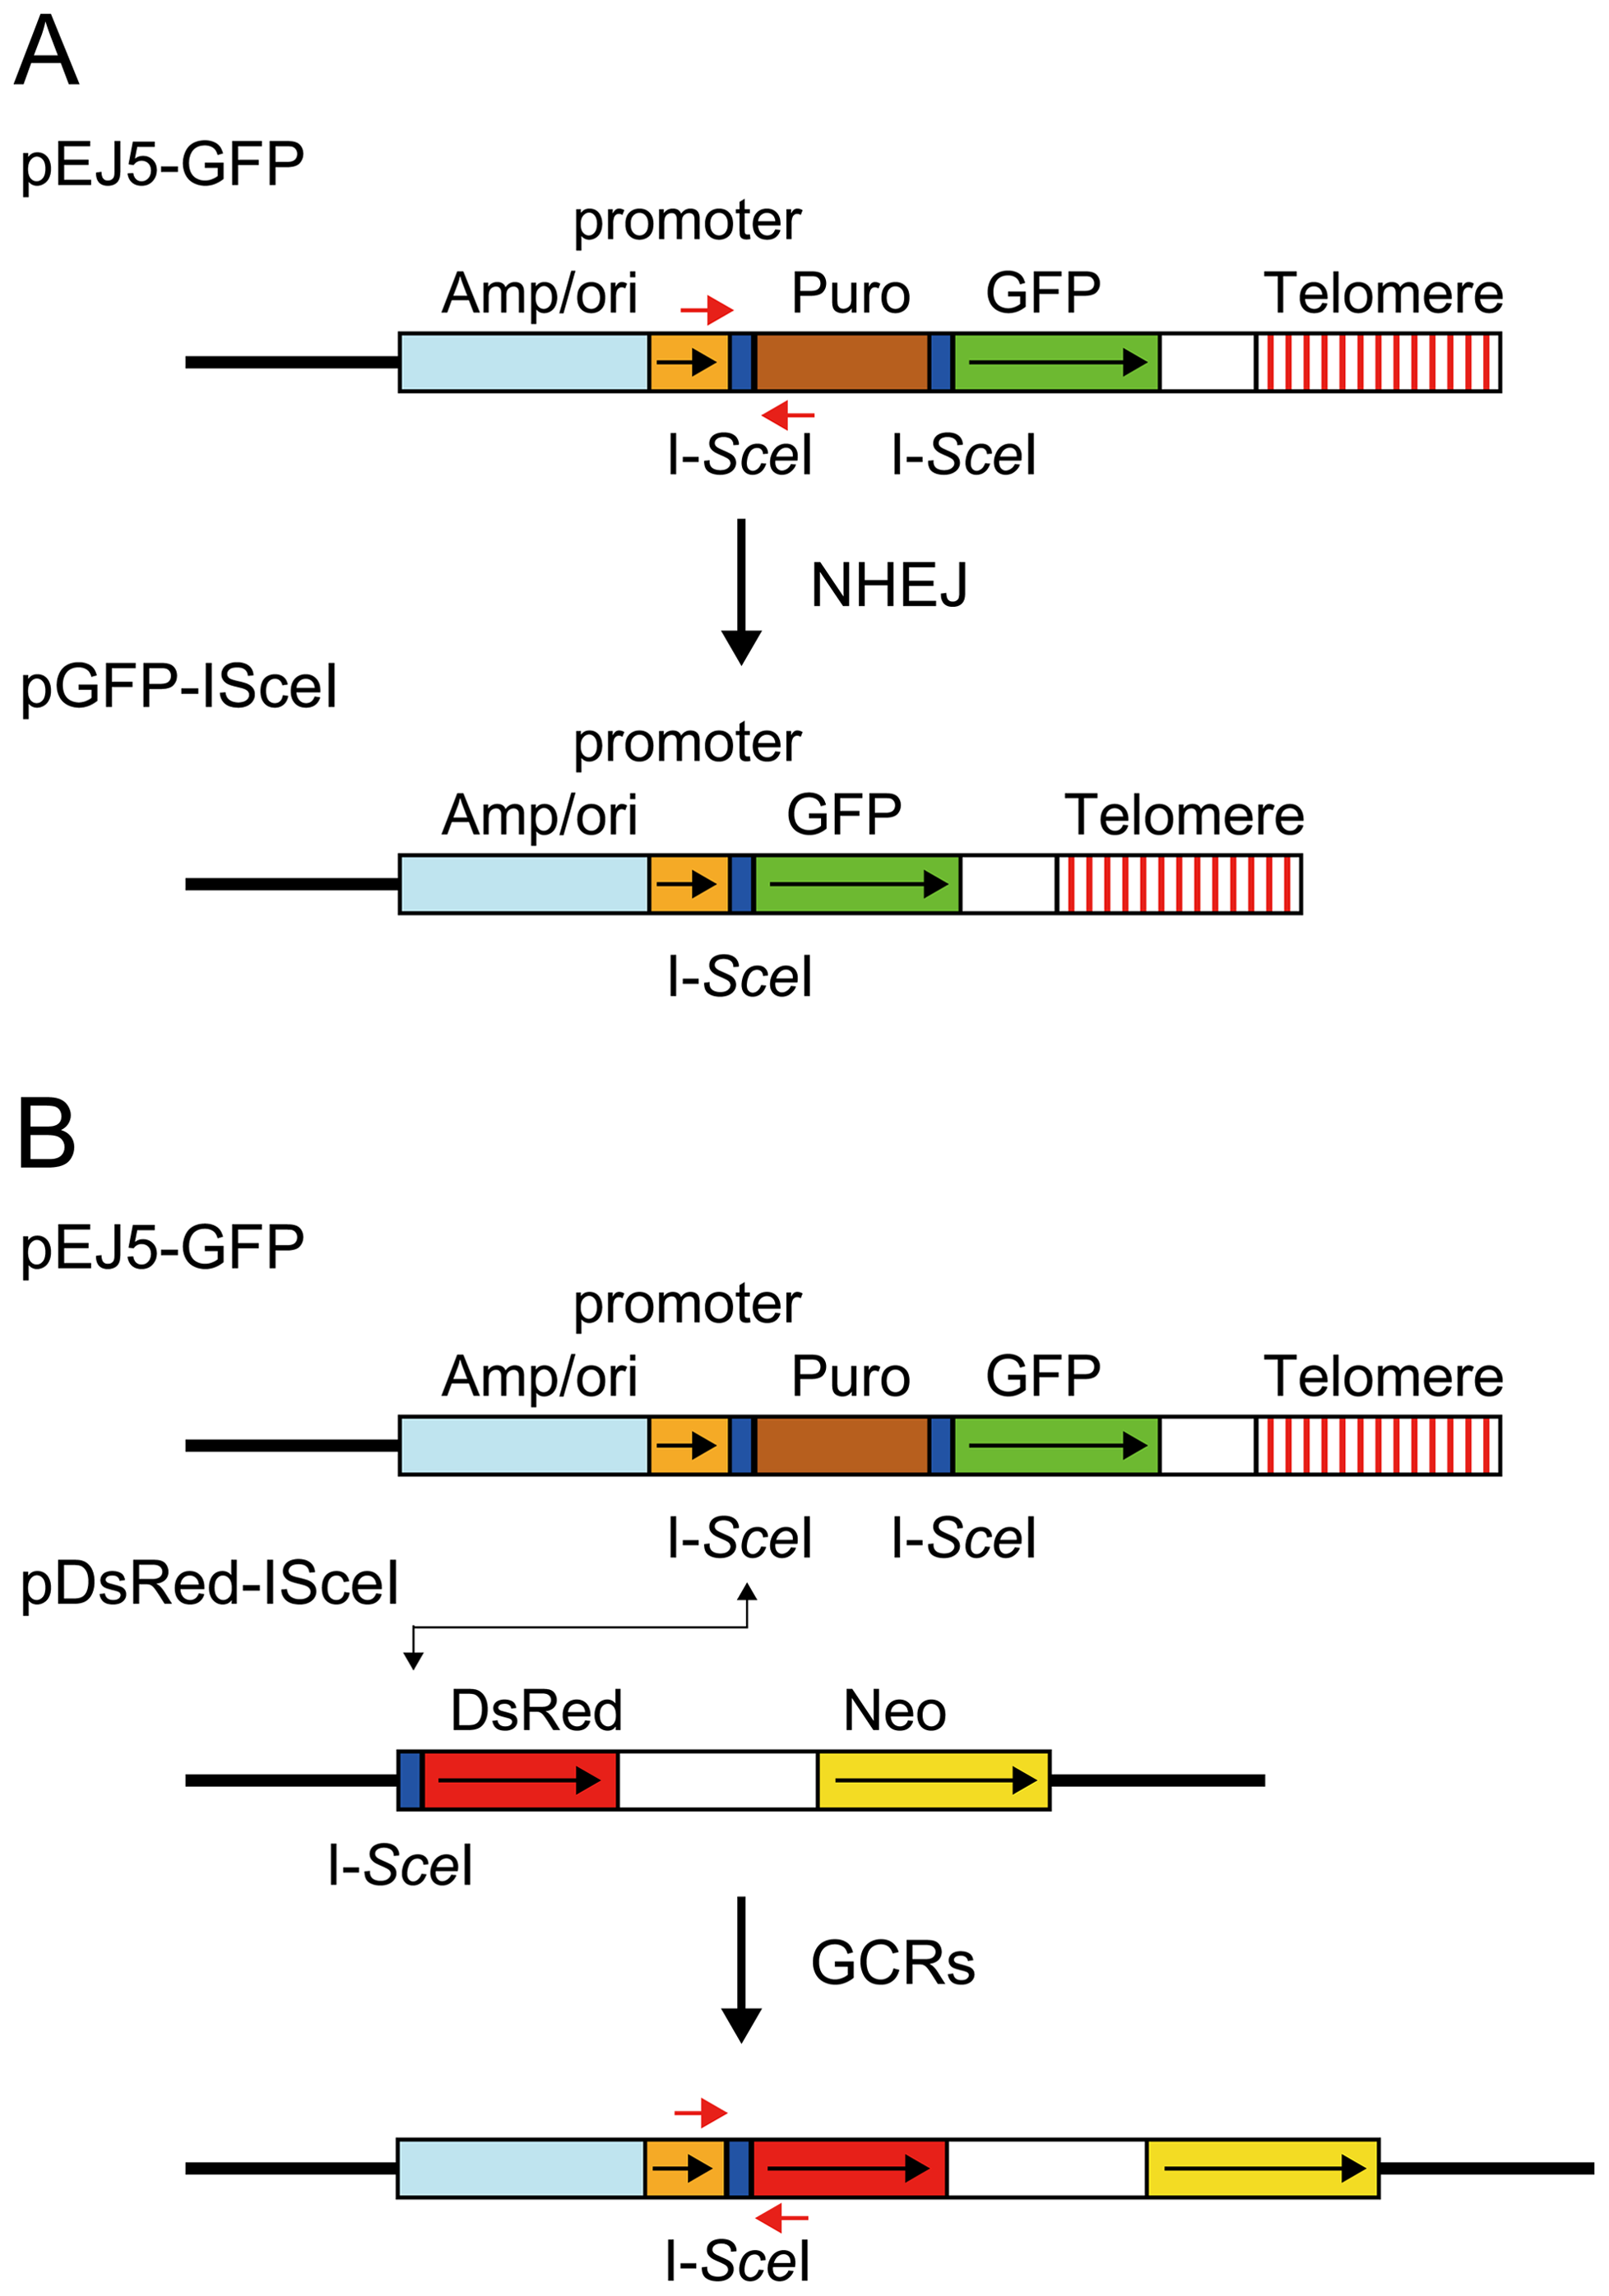 The structure of the plasmids used to monitor NHEJ, GCRs, and large deletions.